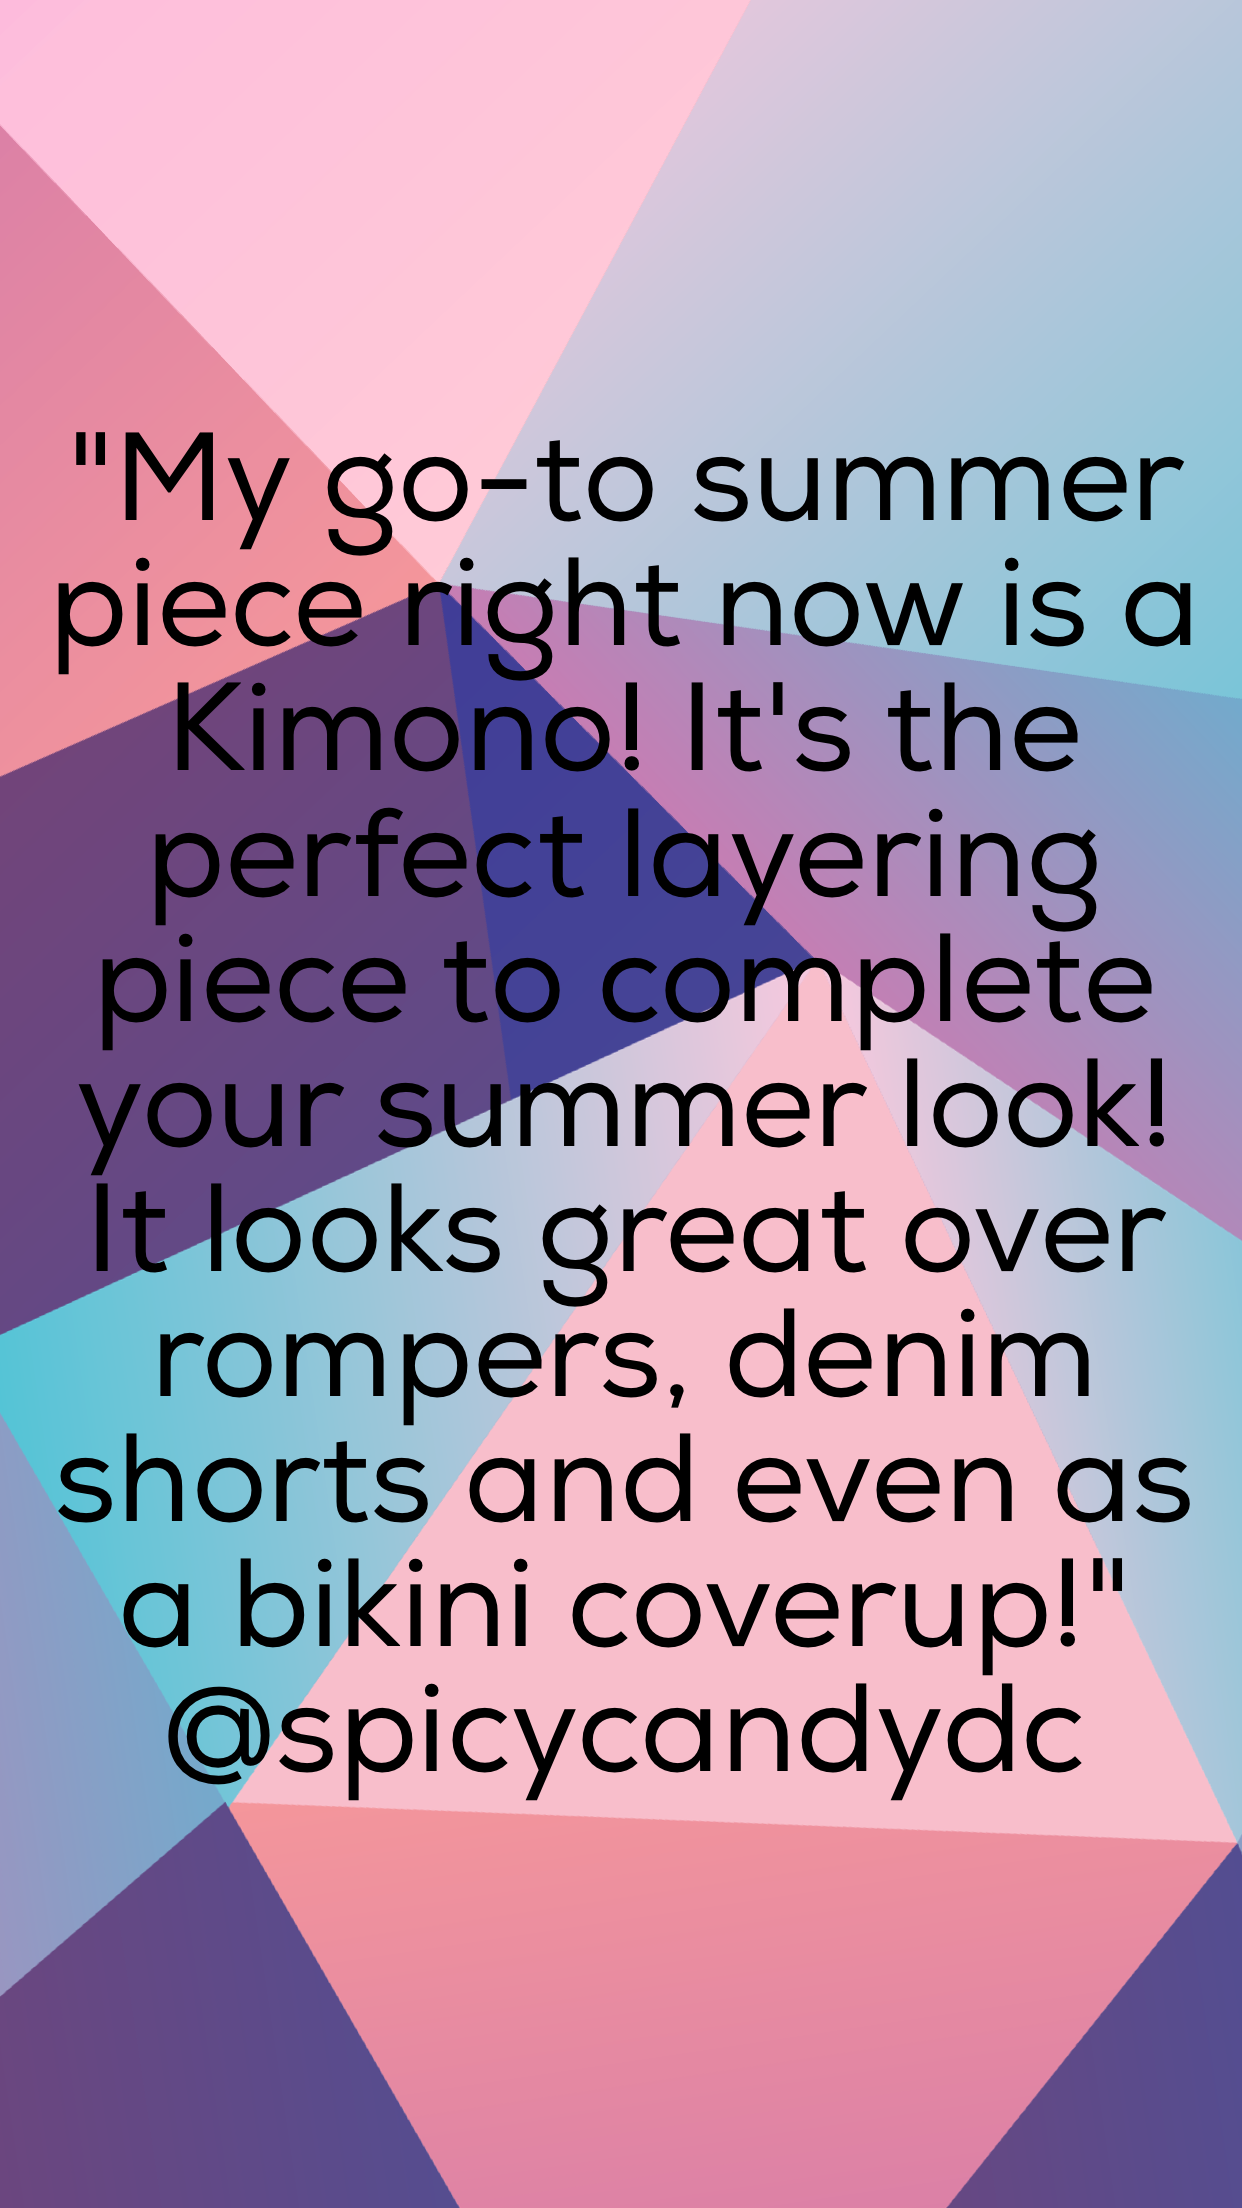 """My go-to summer main piece right now is a Kimono! It's the perfect layering piece to complete your summer look! It looks great over rompers, denim shorts and even as a bikini coverup!"""